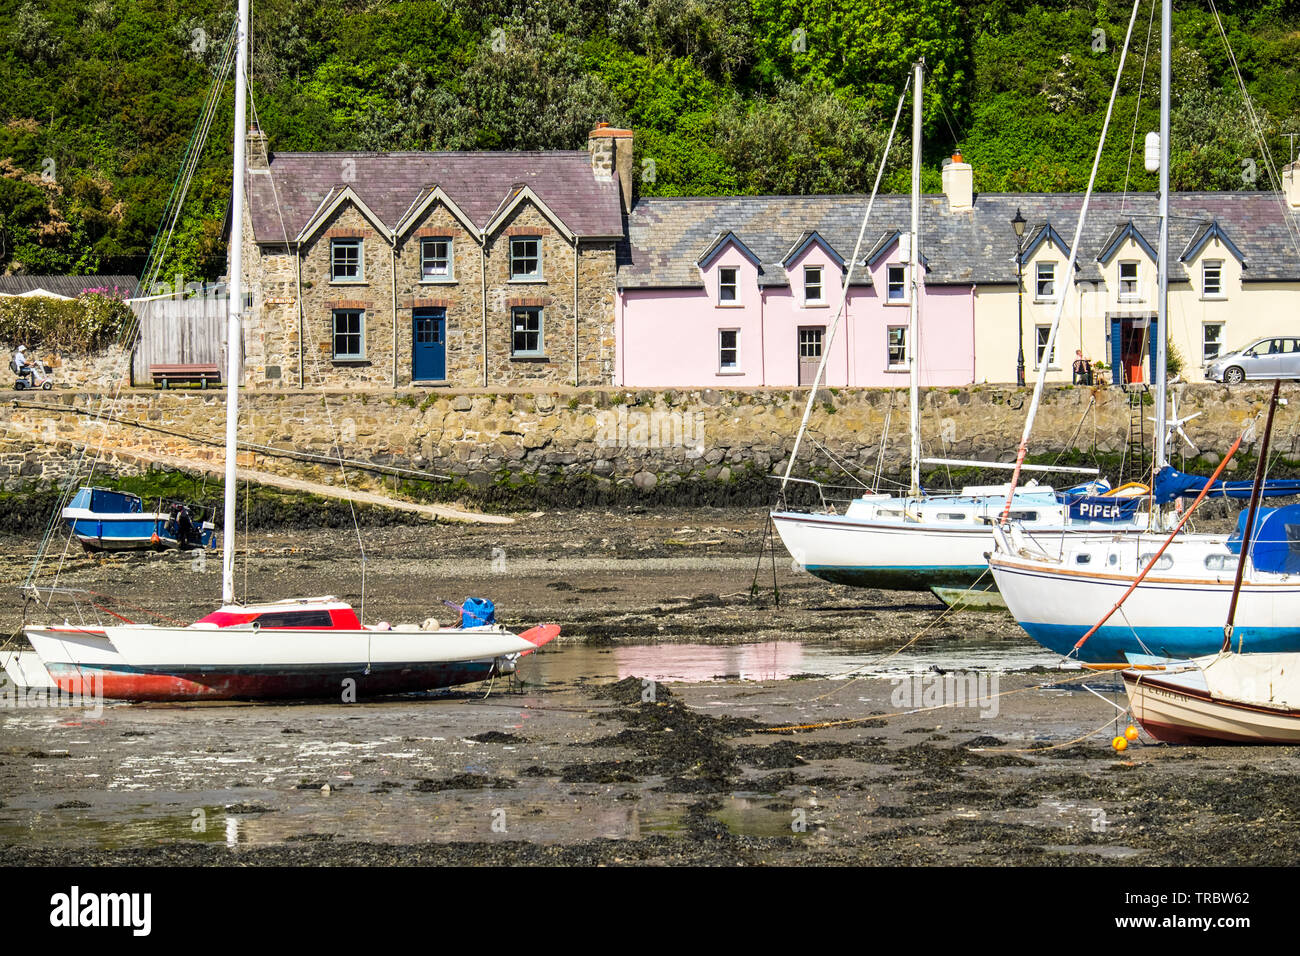 Cottages and boats. Fishguard harbour at low tide, Pembrokeshire Coast National Park, West Wales - Stock Image